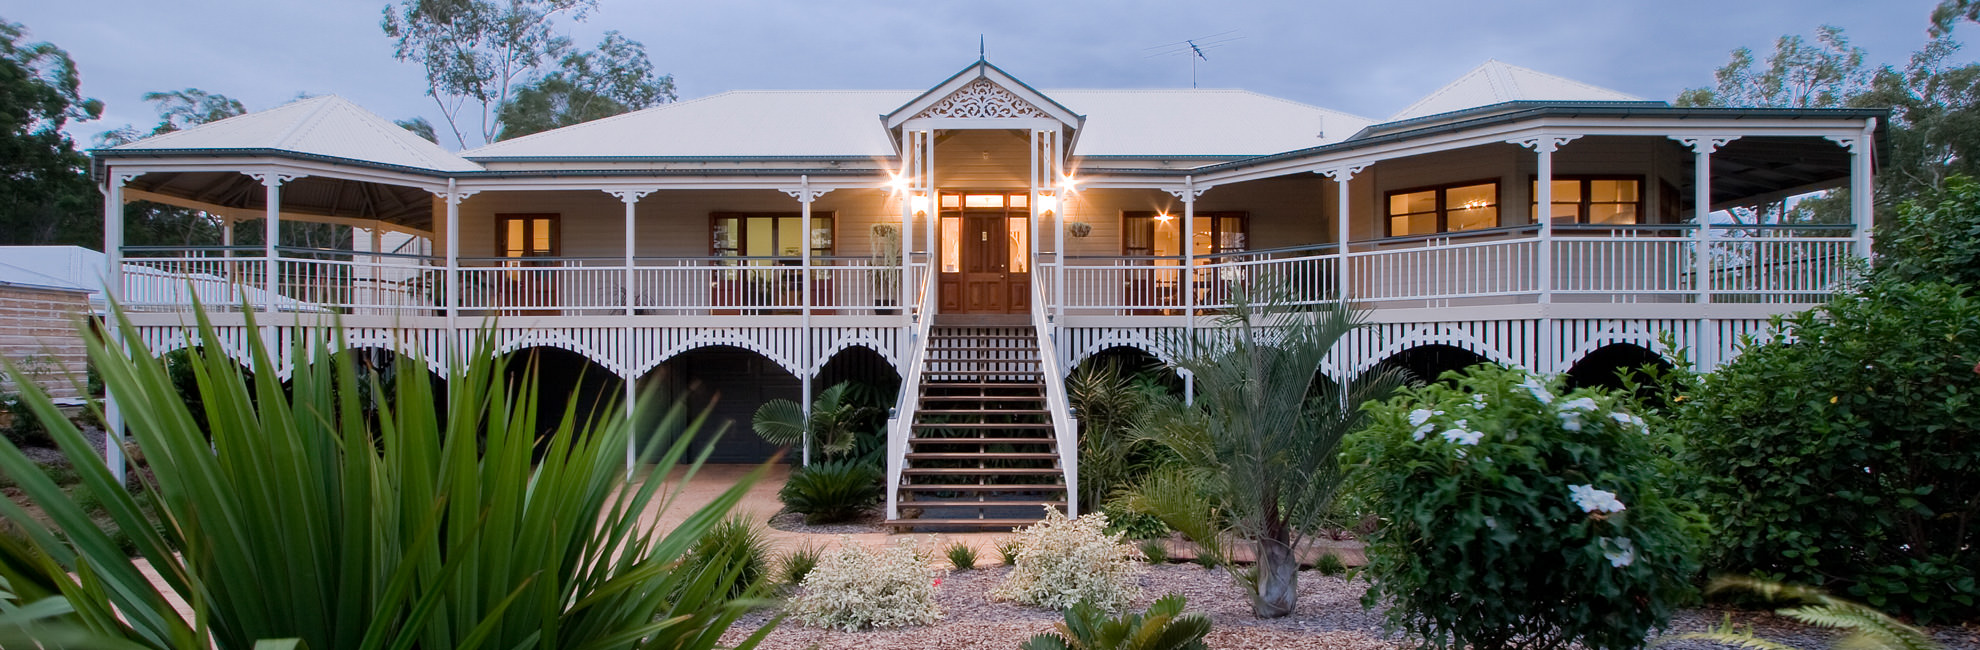 Traditional queenslanders garth chapman traditional for Classic house builders